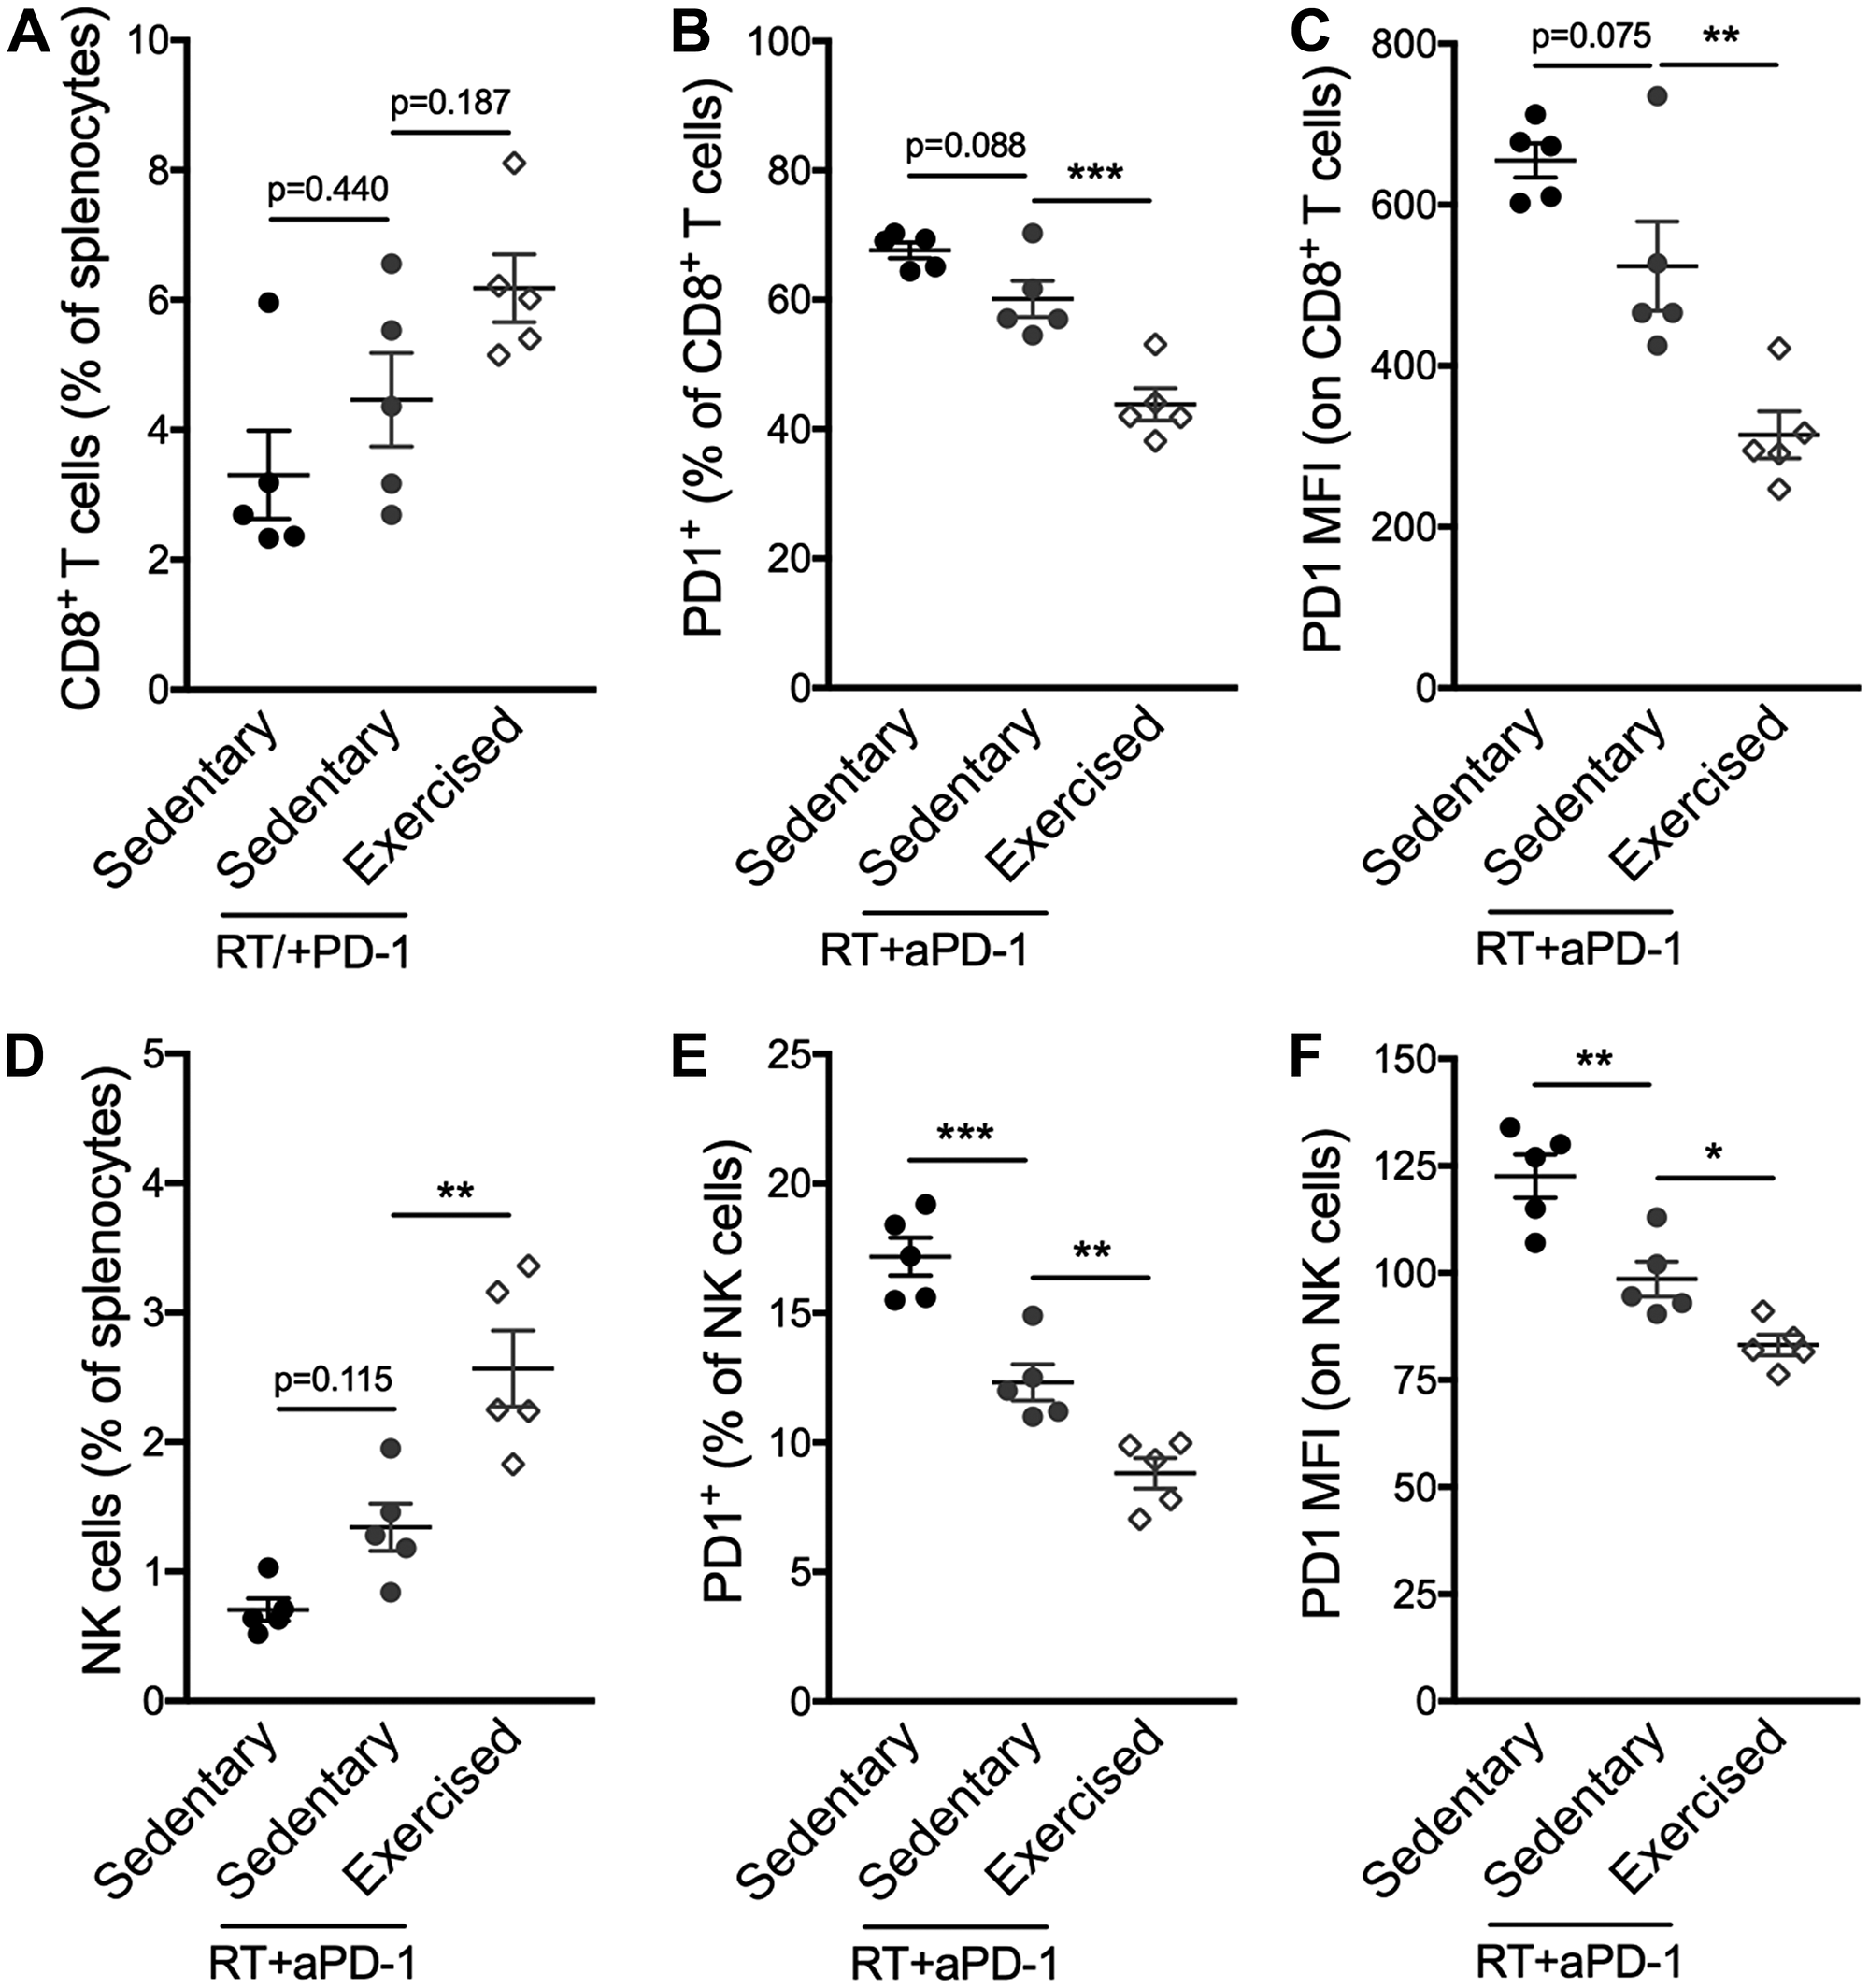 Exercise training following RT/aPD-1 therapy promotes splenic infiltration and reduced PD-1 expression of CD8+ T cells and NK cells.